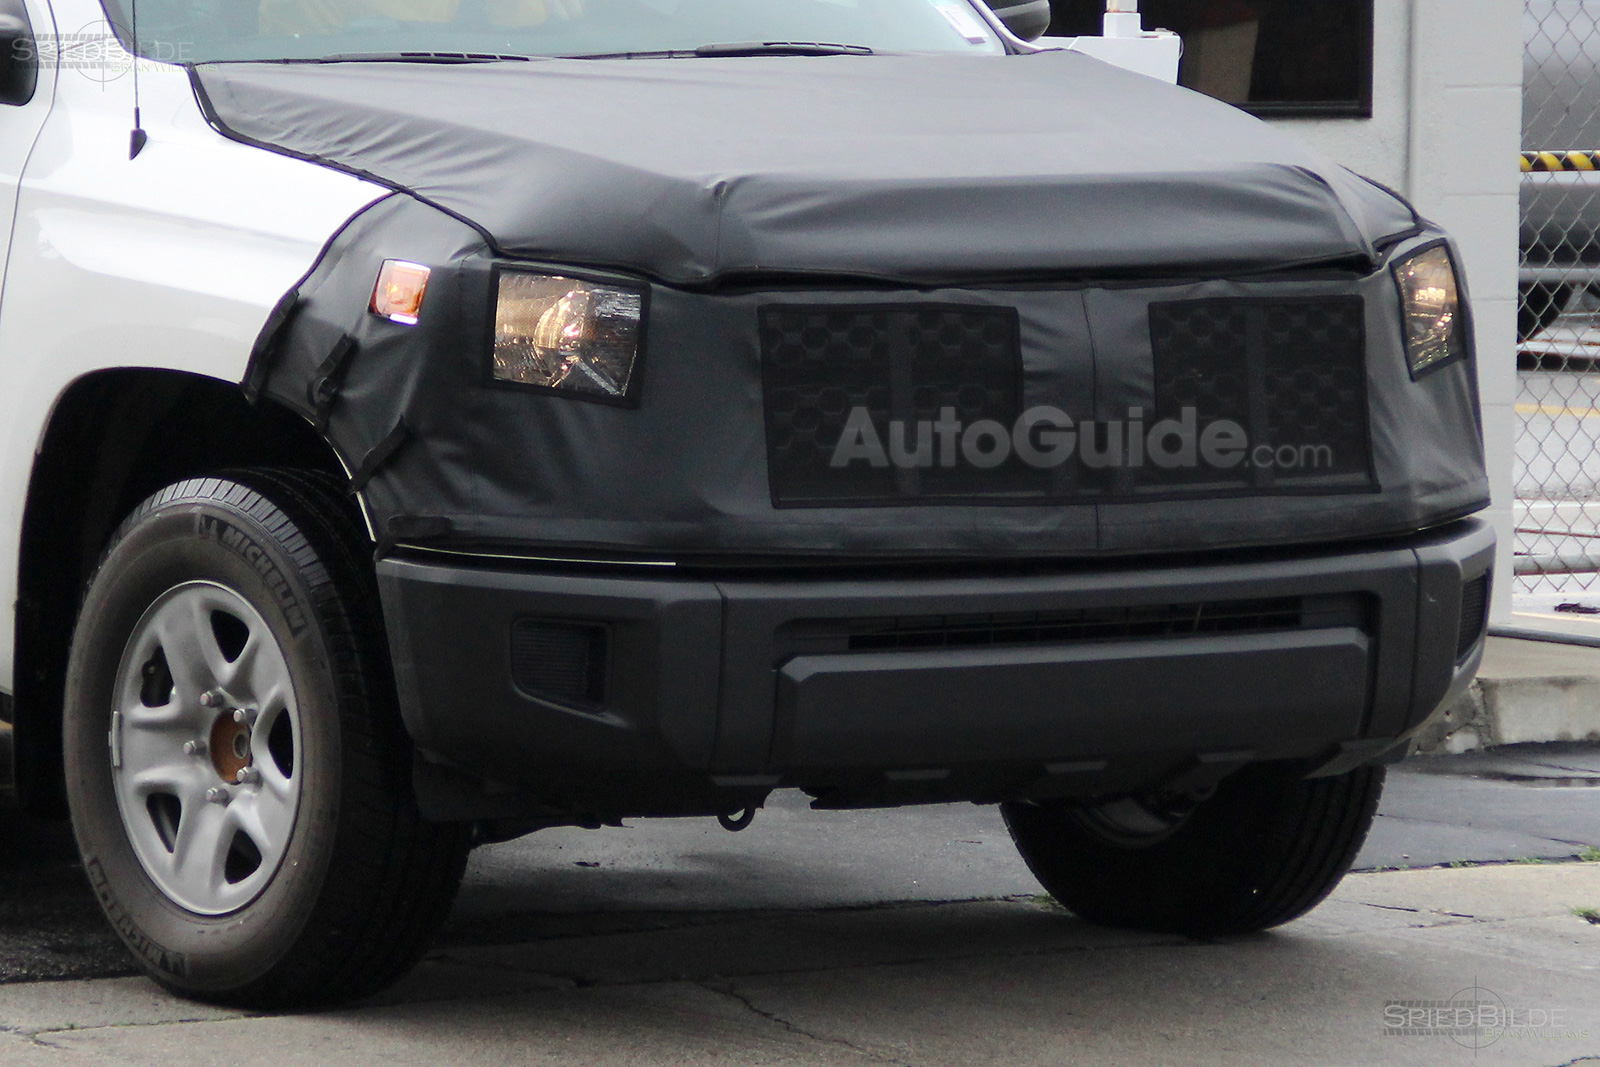 2018 Toyota Tundra Spied Again Showing New Front End ...